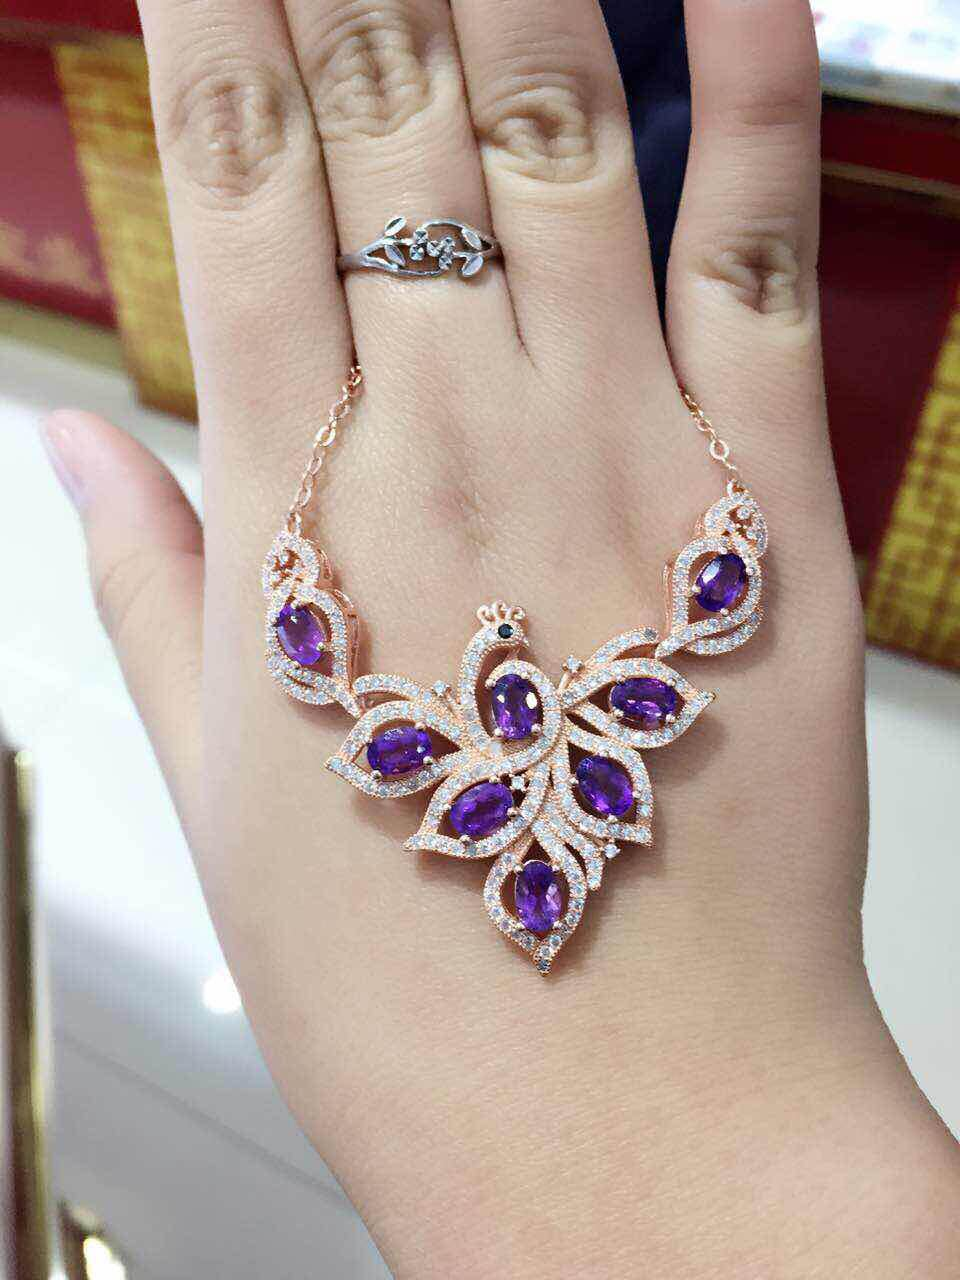 Natural amethyst Necklace natural crystal Pendant Necklace S925 silver trendy Elegant Phoenix women party fine Jewelry цена 2017